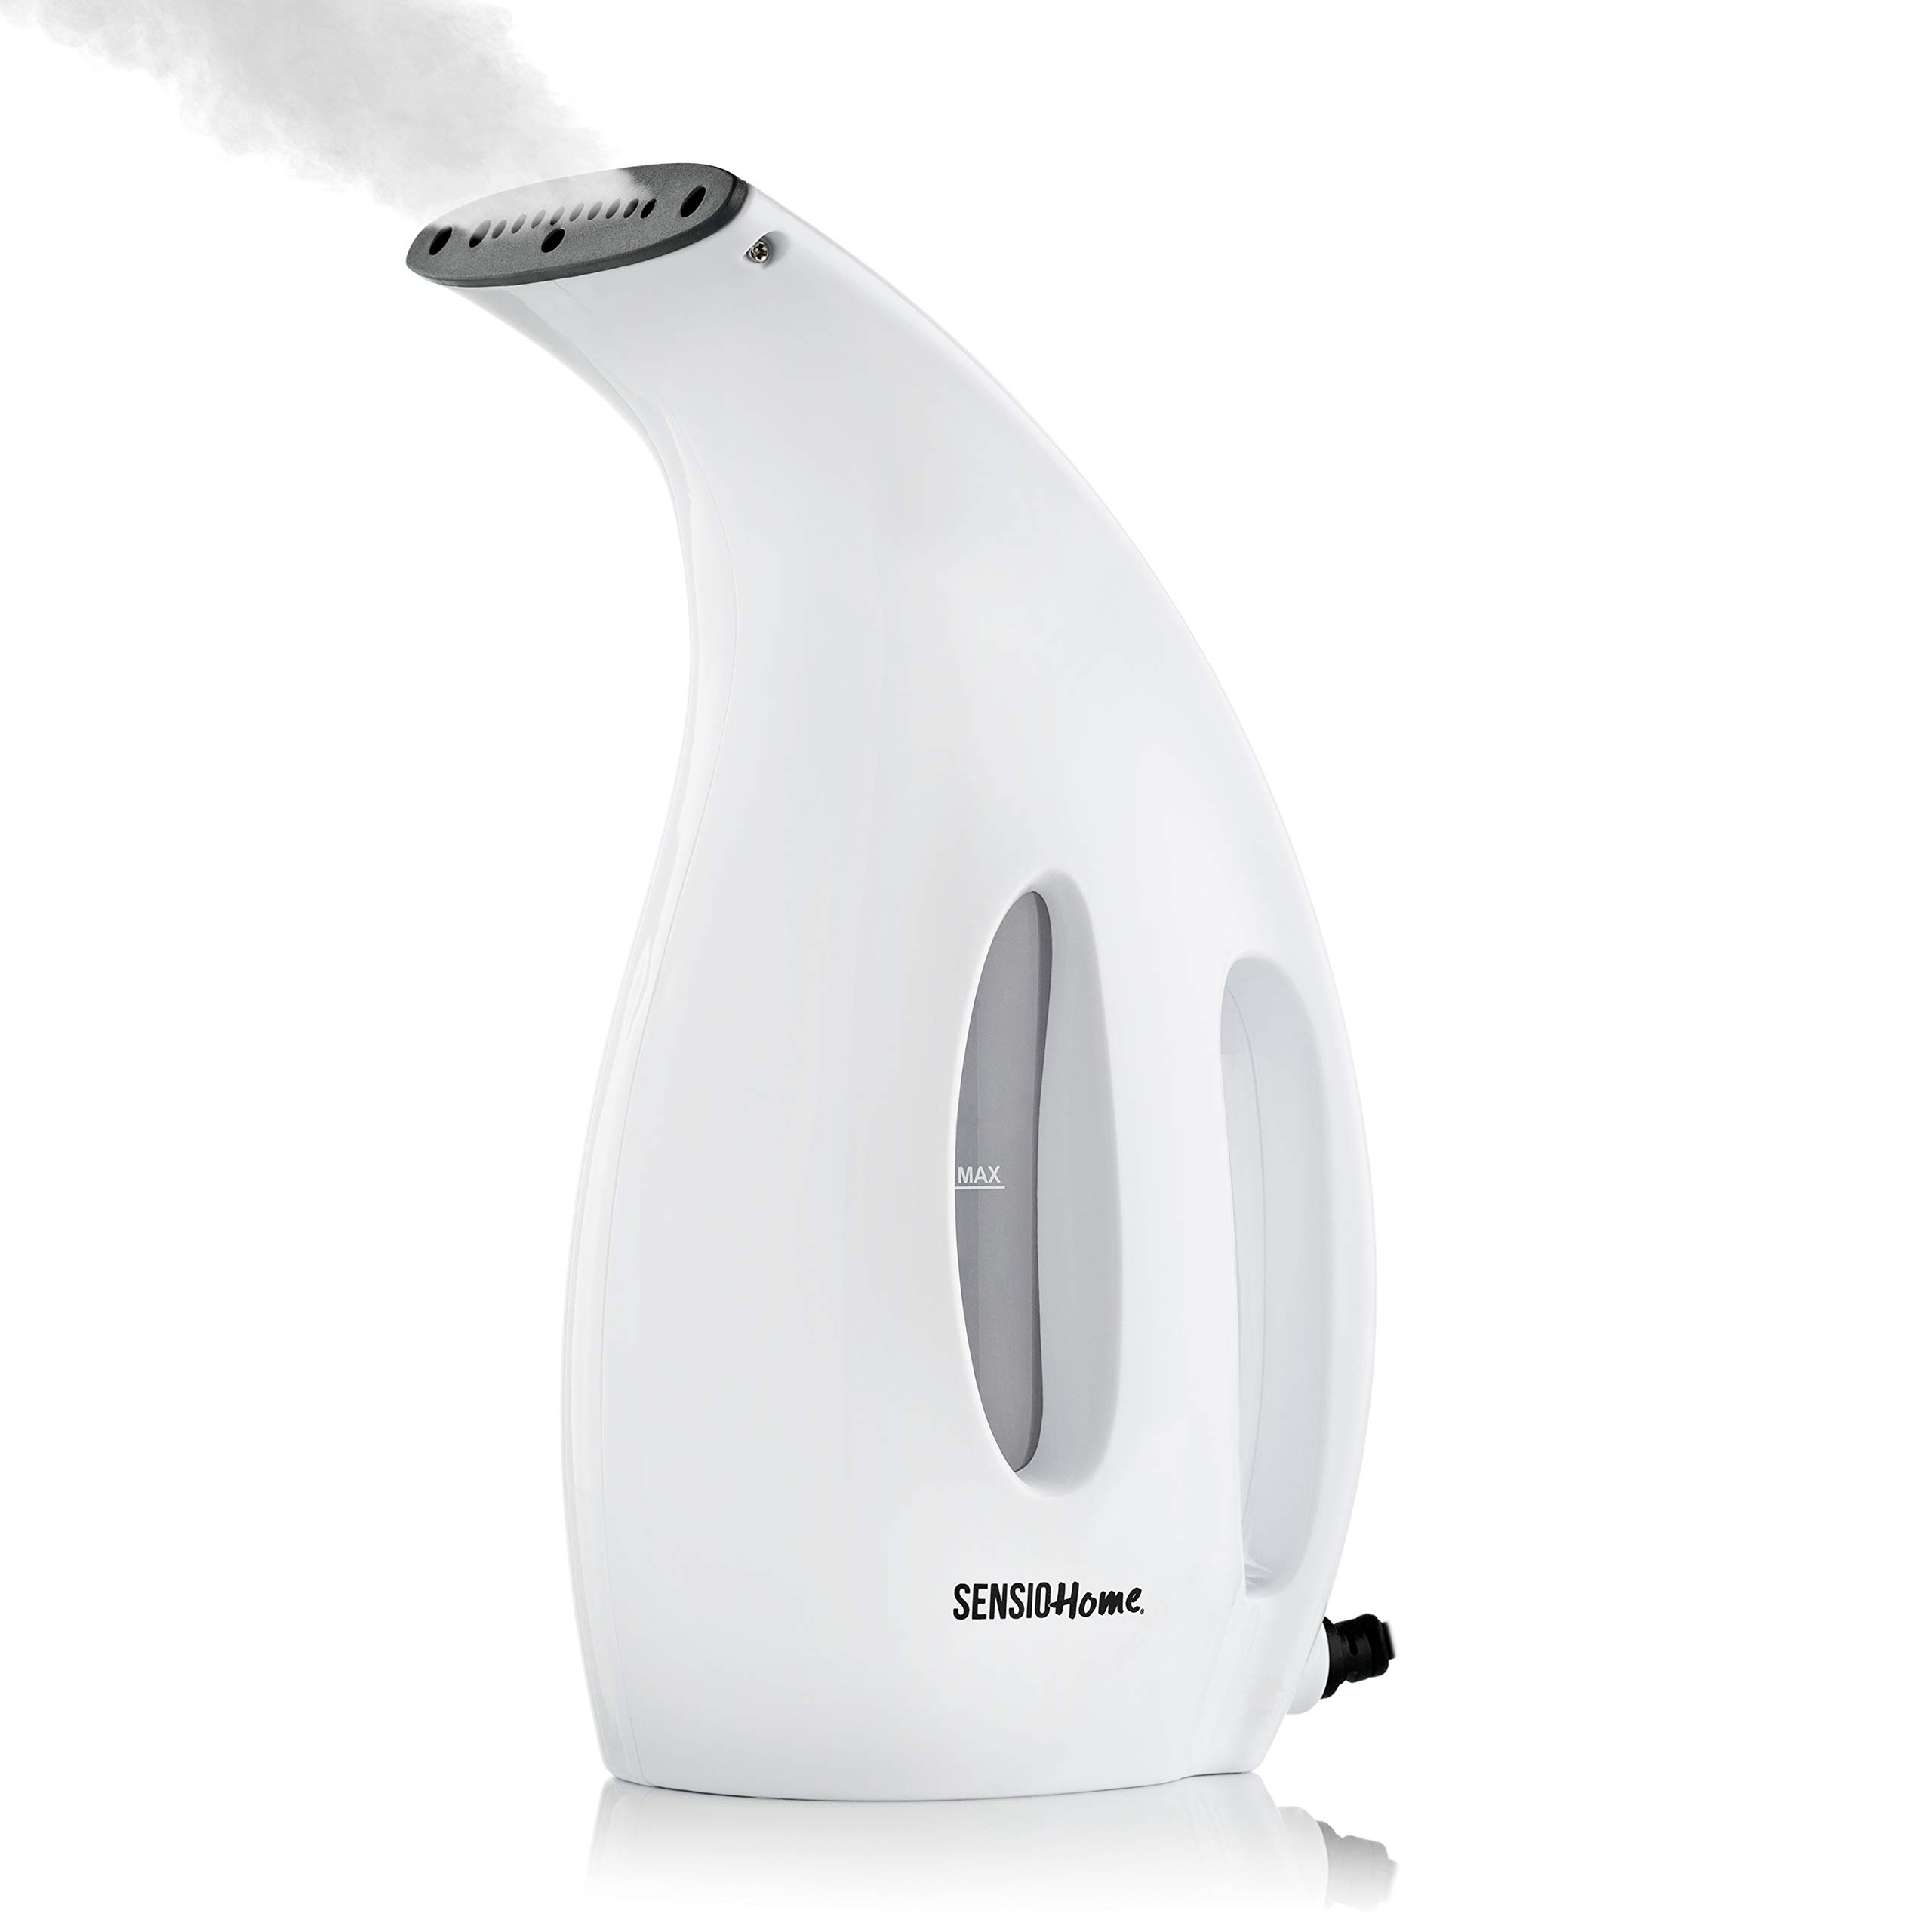 SENSIOHOME Sensio Home Clothes Steamer   Handheld Garment Steamers with 180ml Capacity   Electric Portable Lightweight Steam Iron Perfect for Travel   900 Watts   White